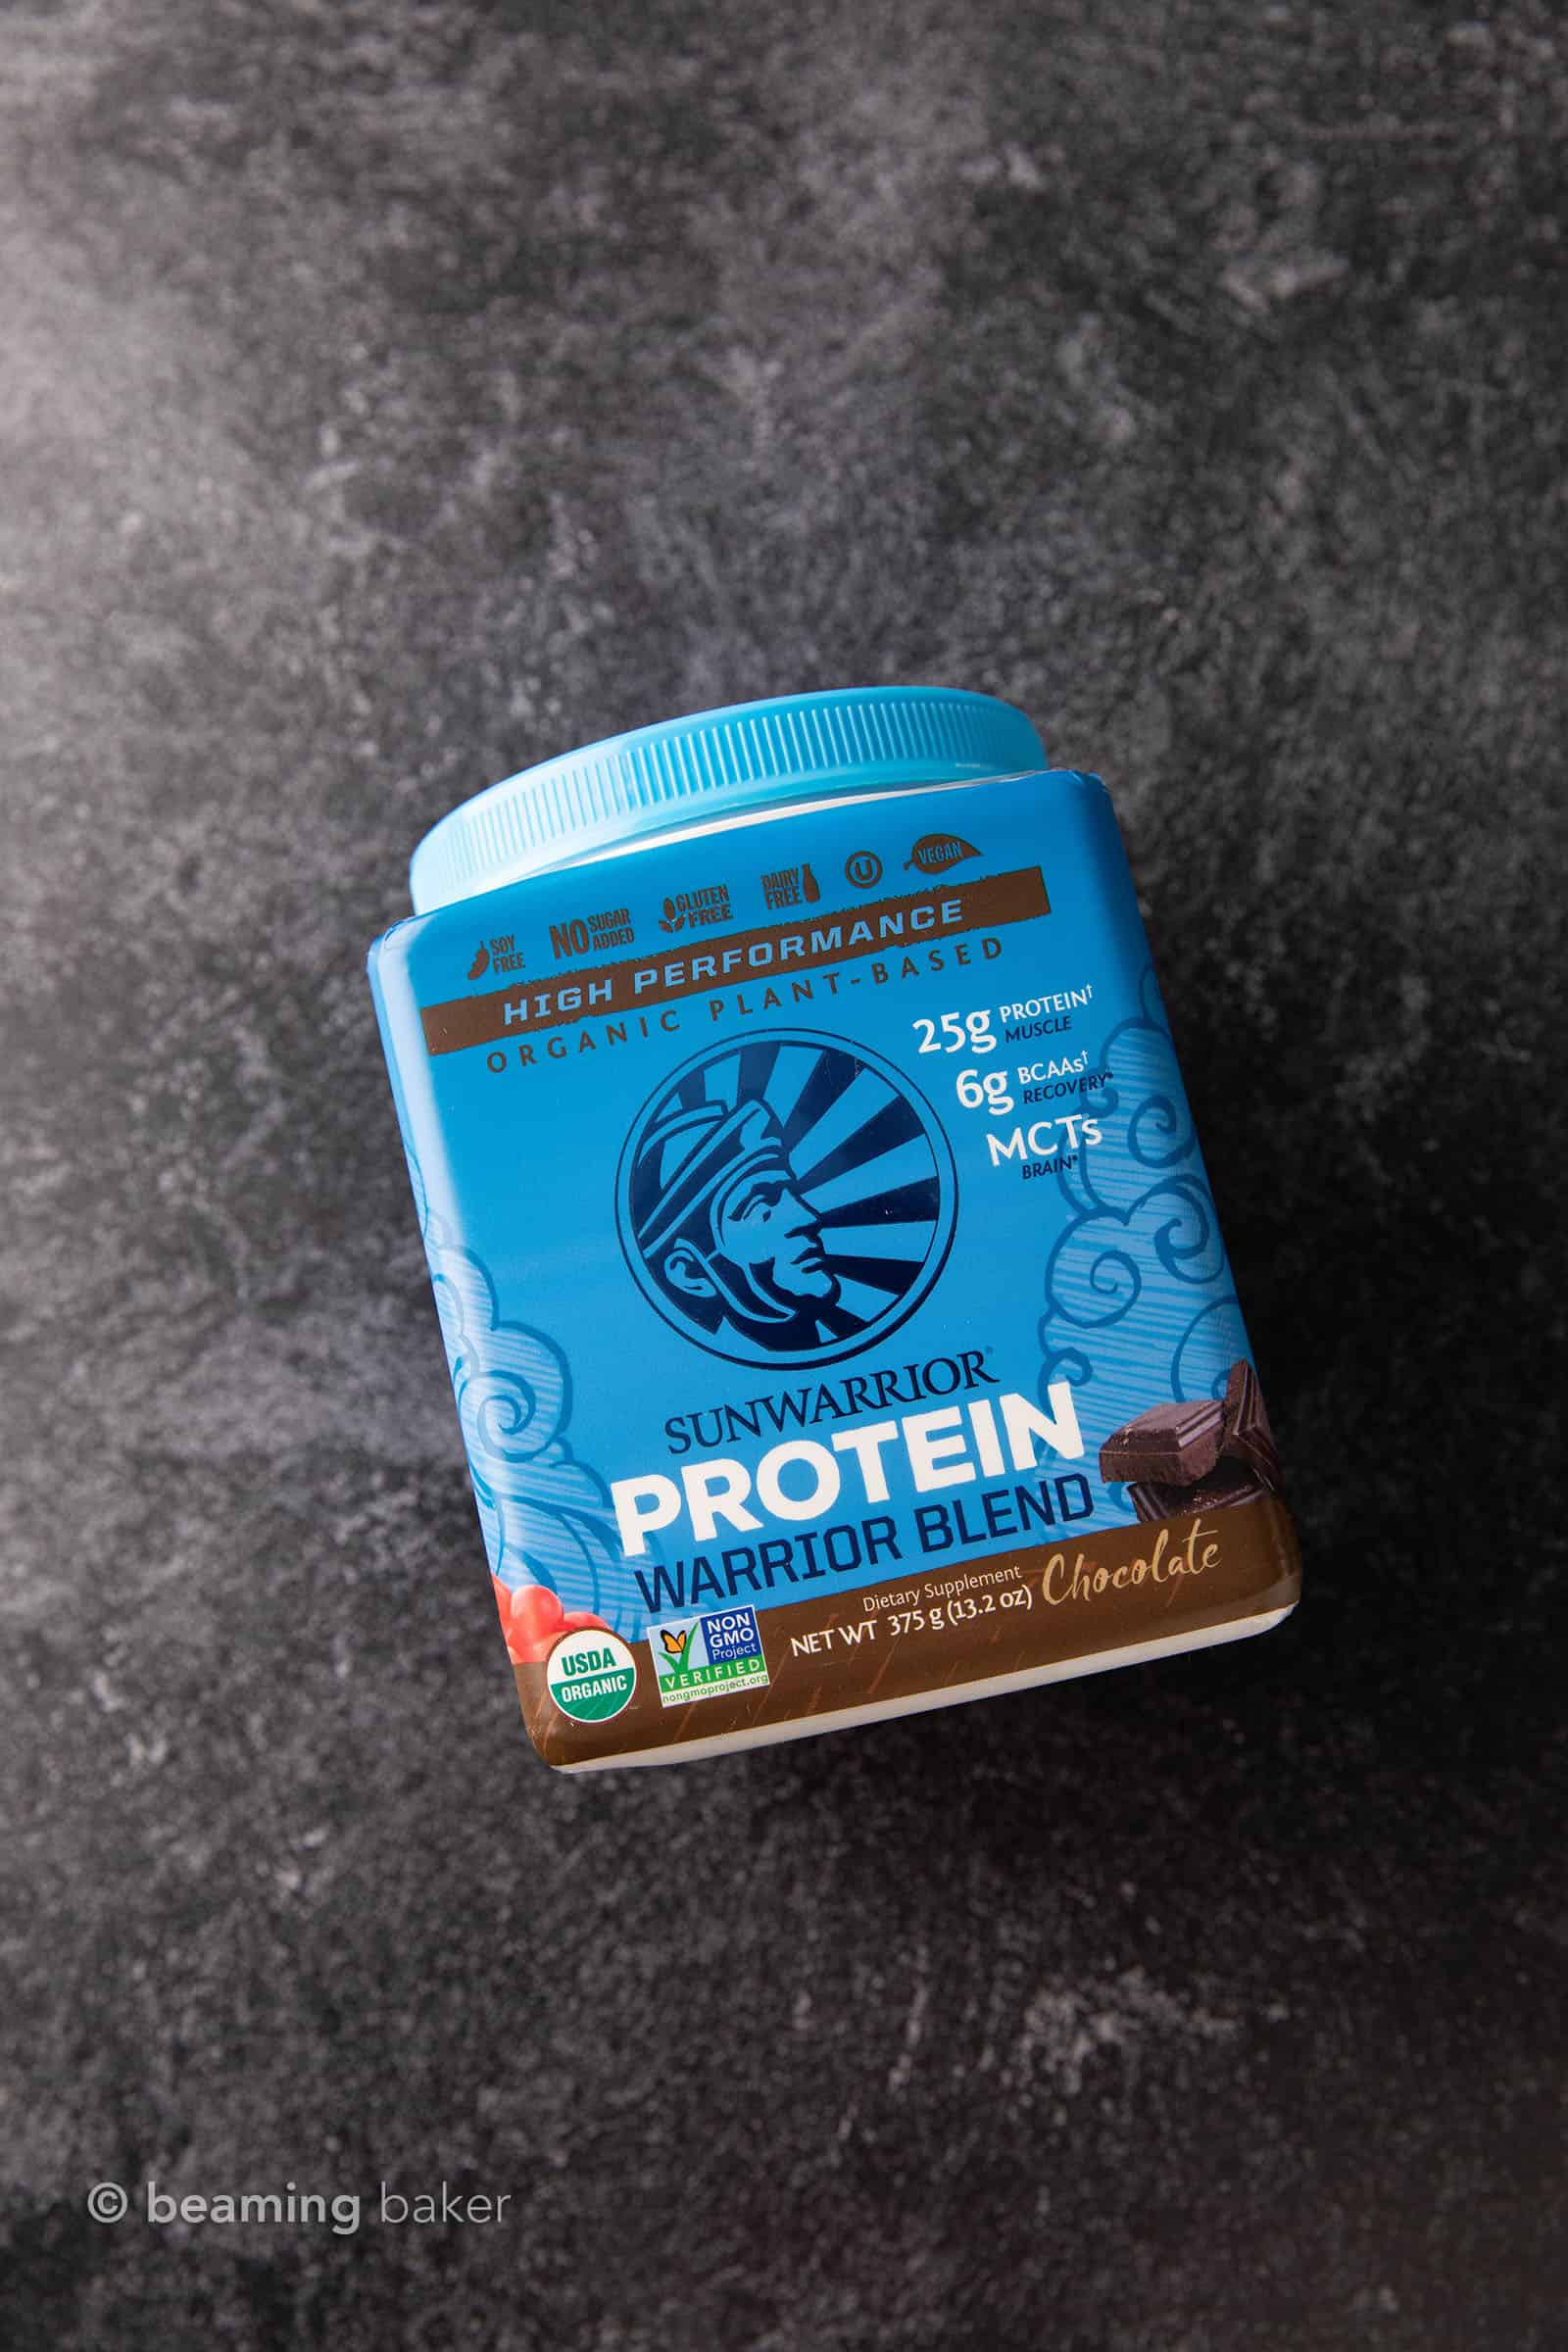 Best Vegan Protein Powder: Ranked. My review of the BEST tasting, healthiest Vegan protein powders to the WORST—Chocolate edition! Bonus: an EASY recipe for the best Plant Based Vegan Protein Powder Shake! #PlantBased #Vegan #Protein #Shakes #Healthy | Recipe at BeamingBaker.com